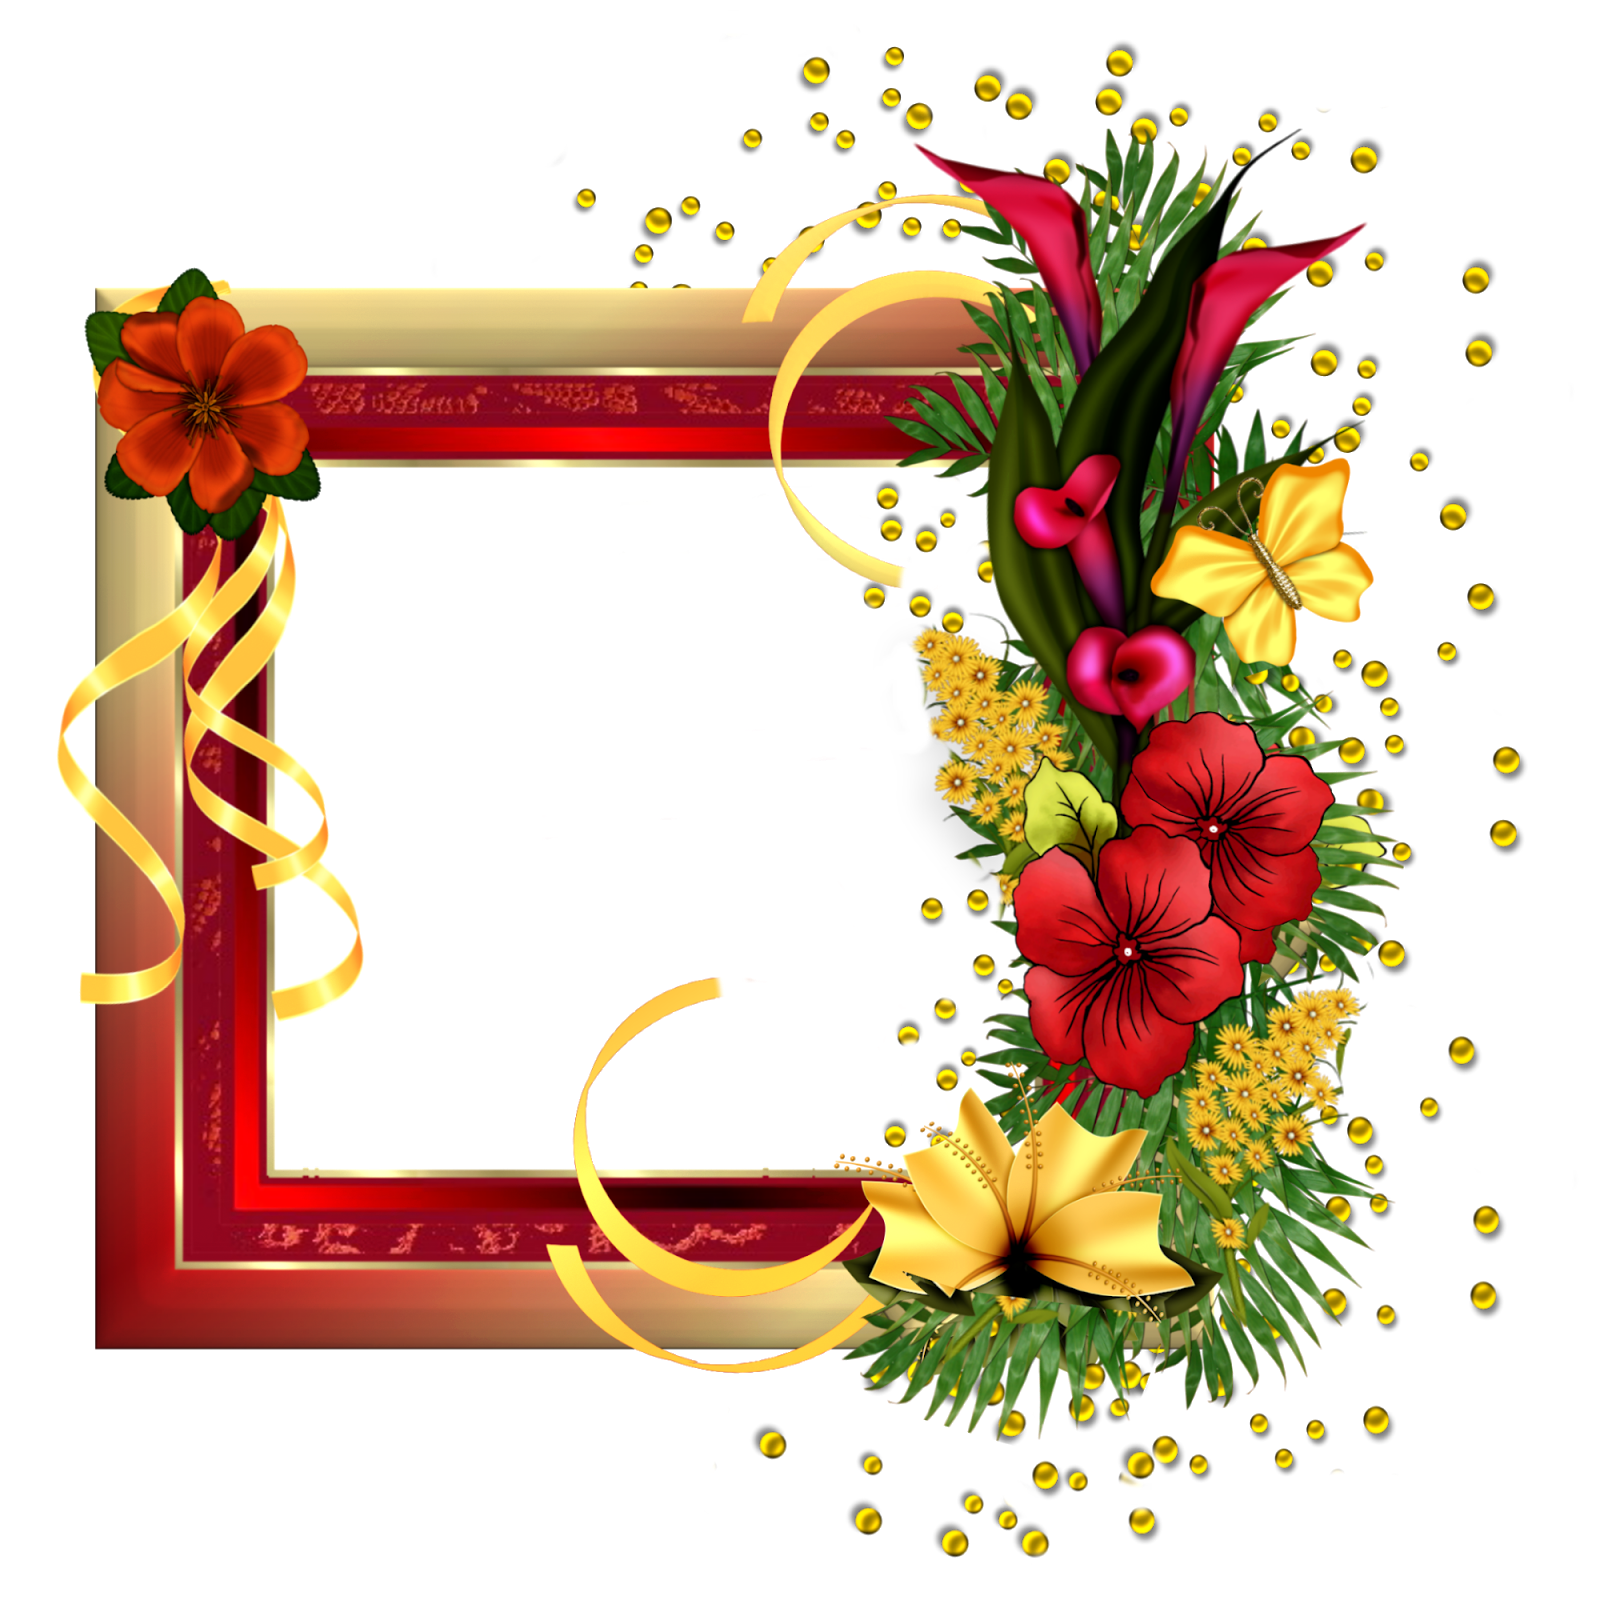 Beauty In Frame: Photoshop.png Frames Wallpapers Designs: Beautiful-Flowers